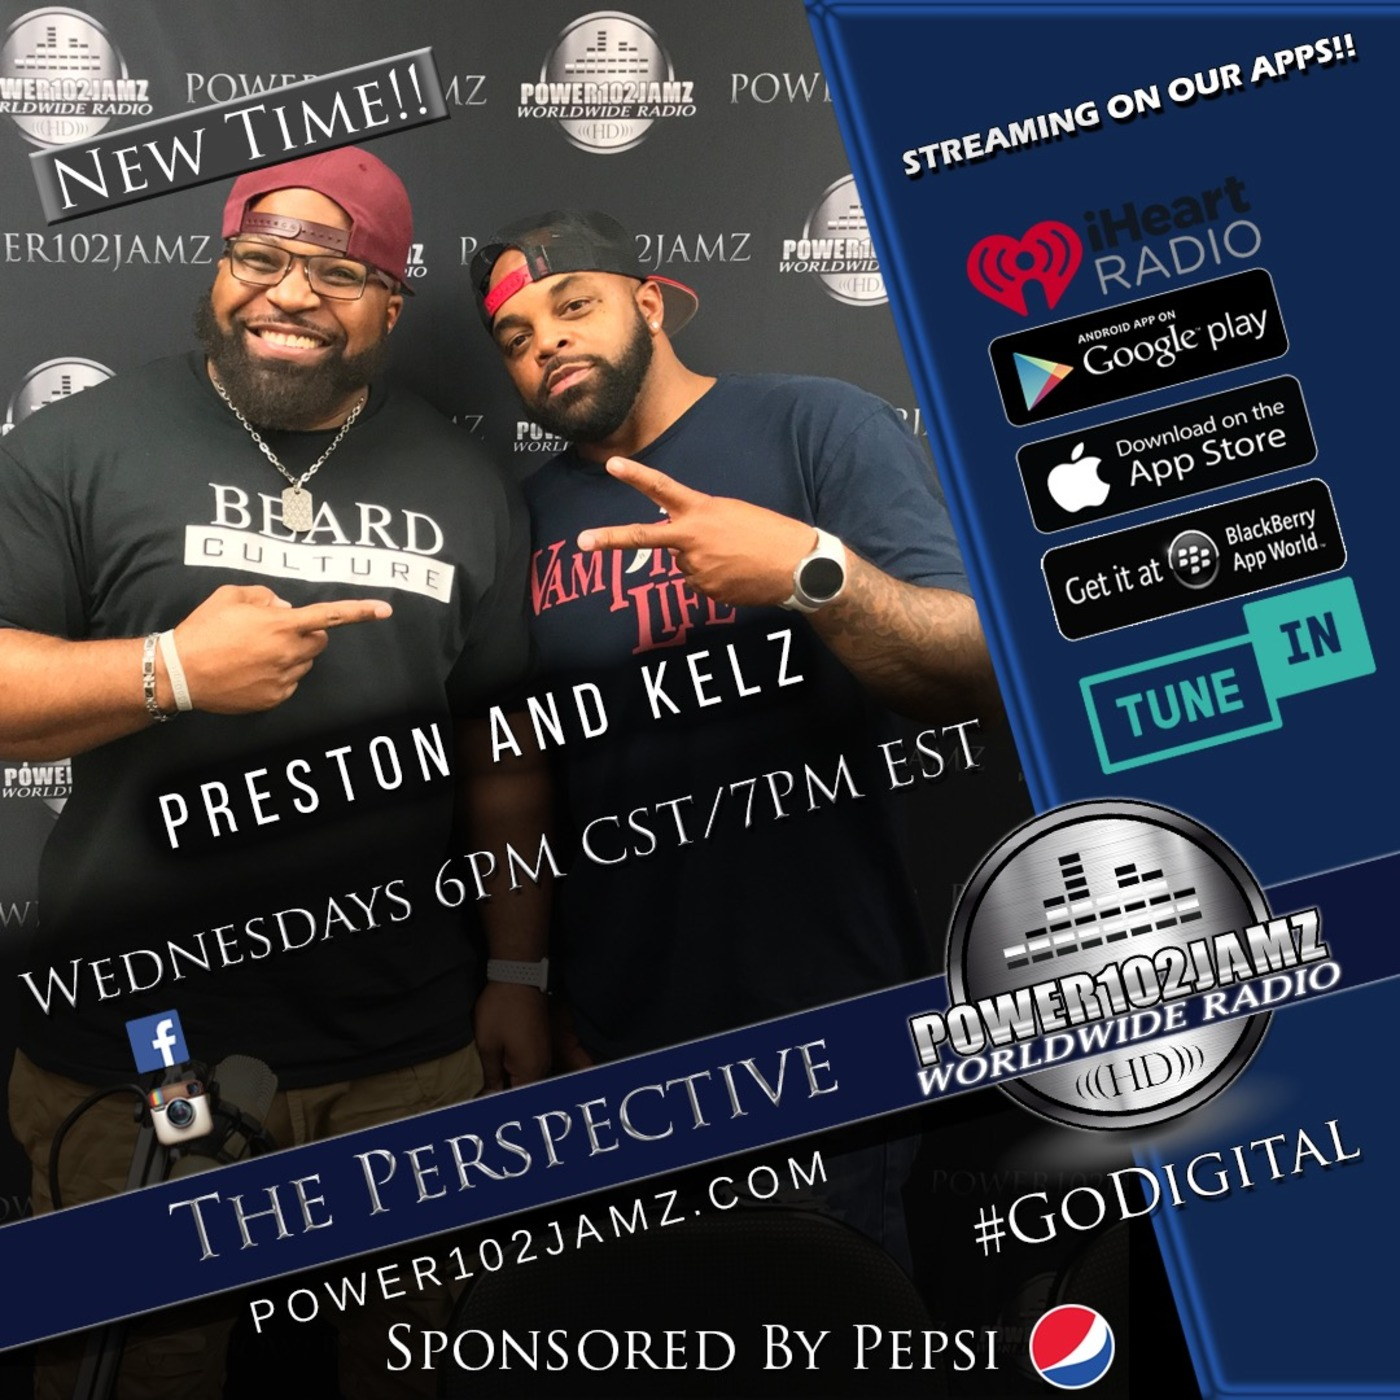 The Perspective Live Broadcast! #17 Power102Jamz podcast